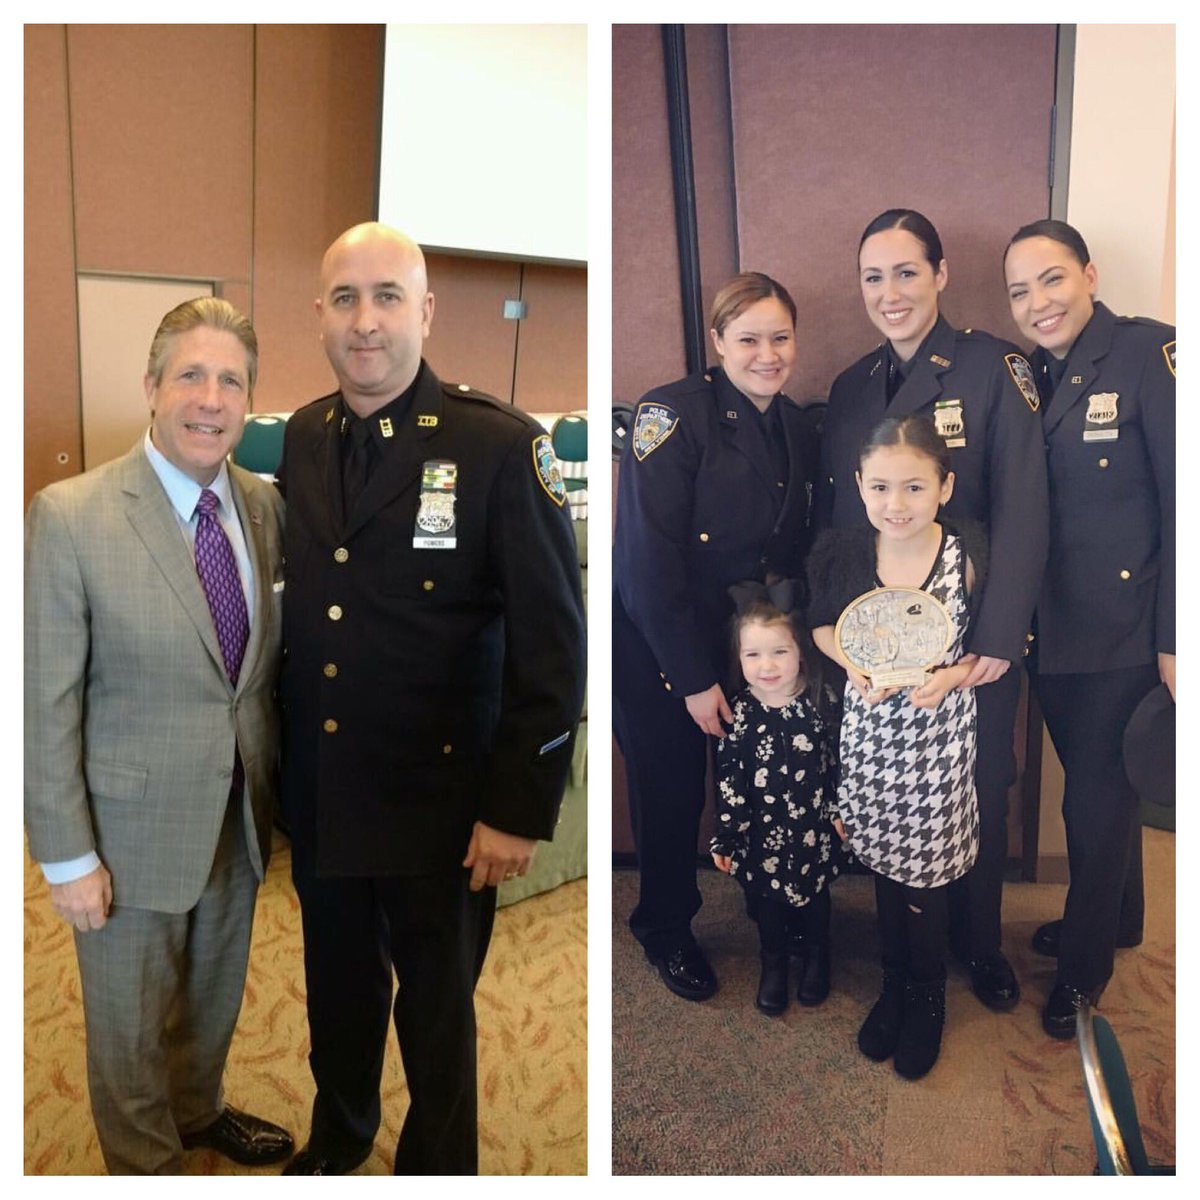 nypd st precinct nypdpct twitter congrats to all the medal recipients at our annual medal day i am very proud of the outstanding work that my officers do everyday